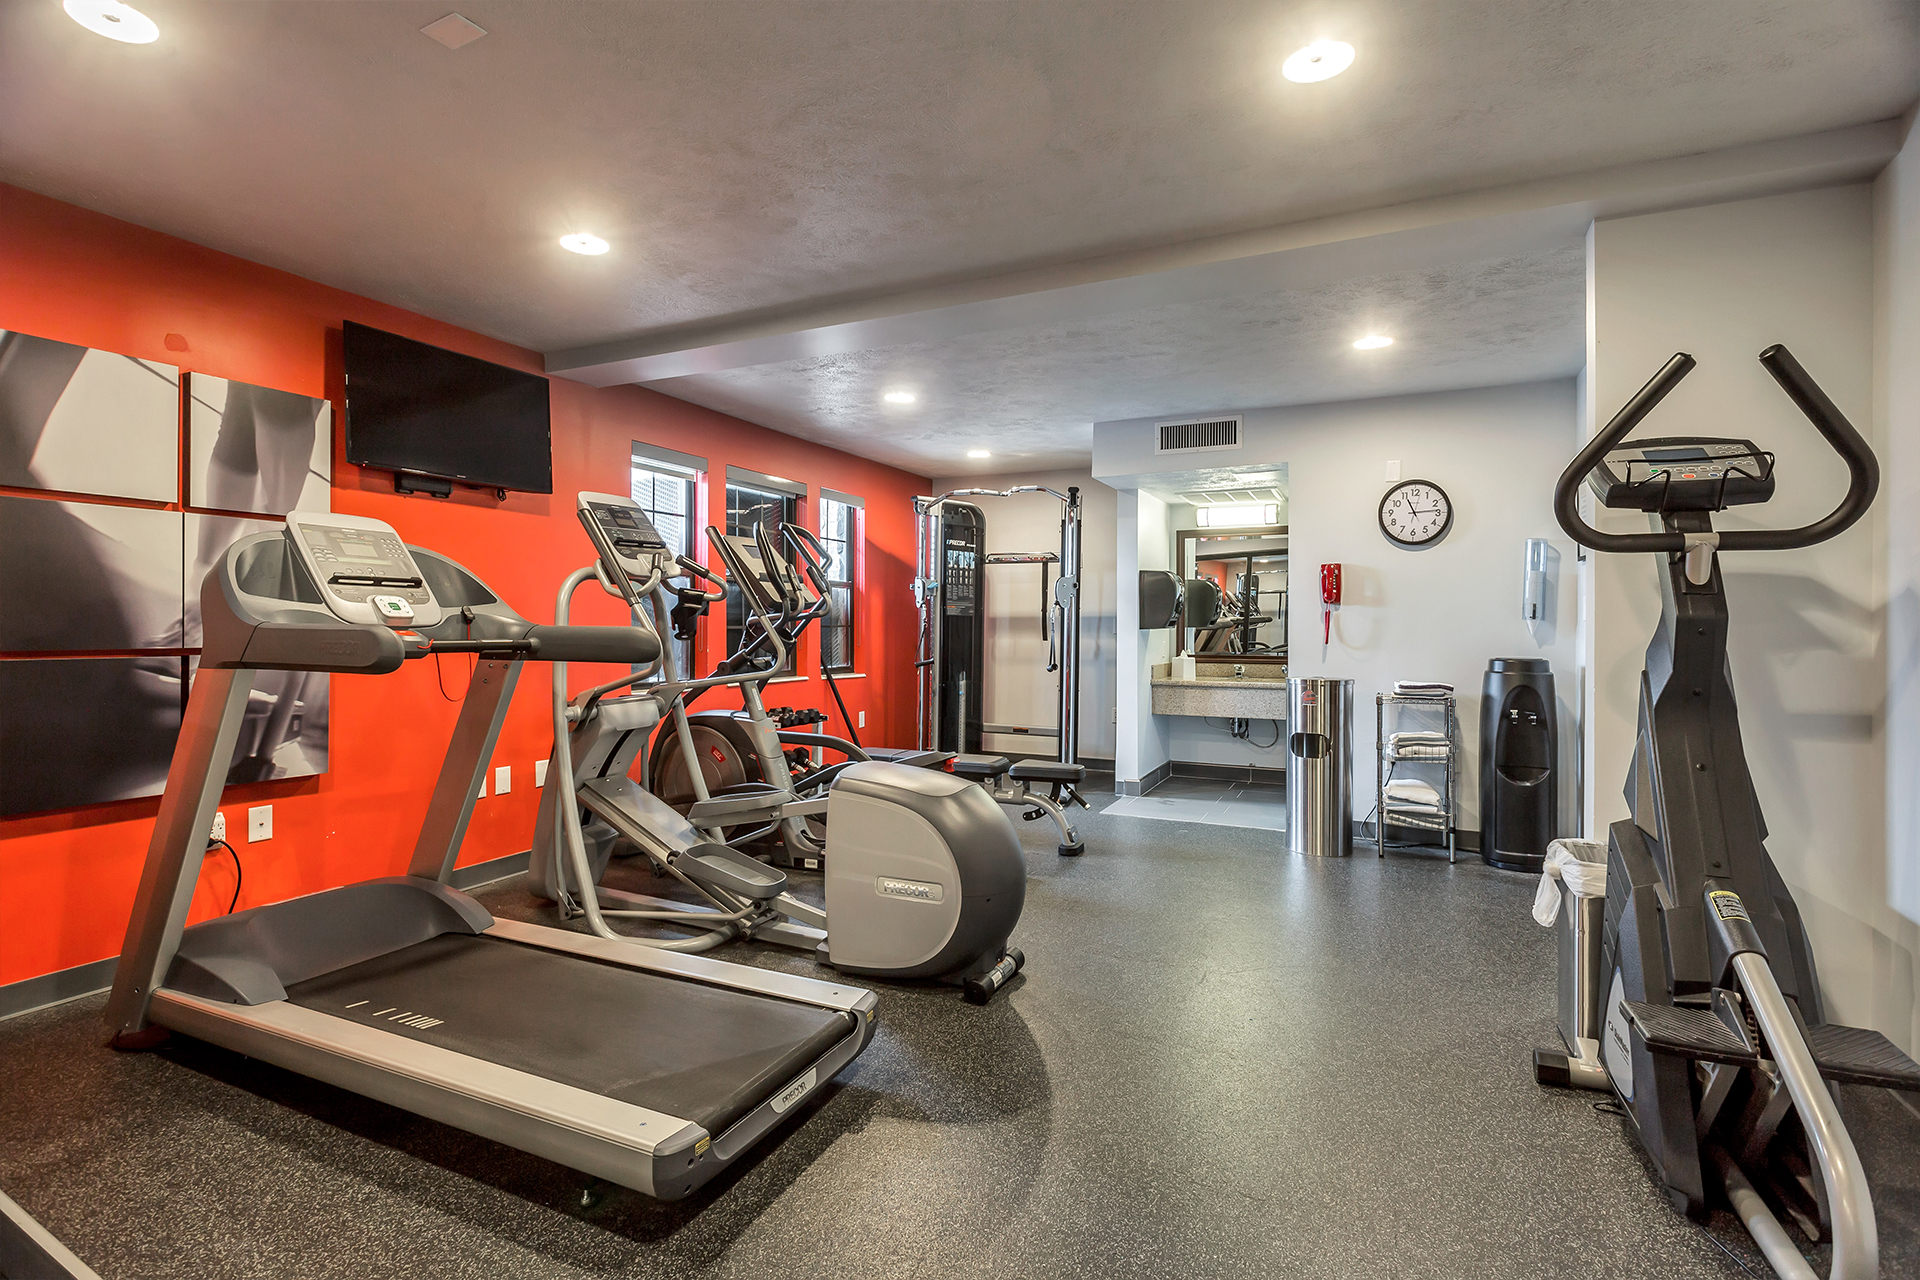 https://www.hotelsbyday.com/_data/default-hotel_image/2/10023/fitness-center.jpg